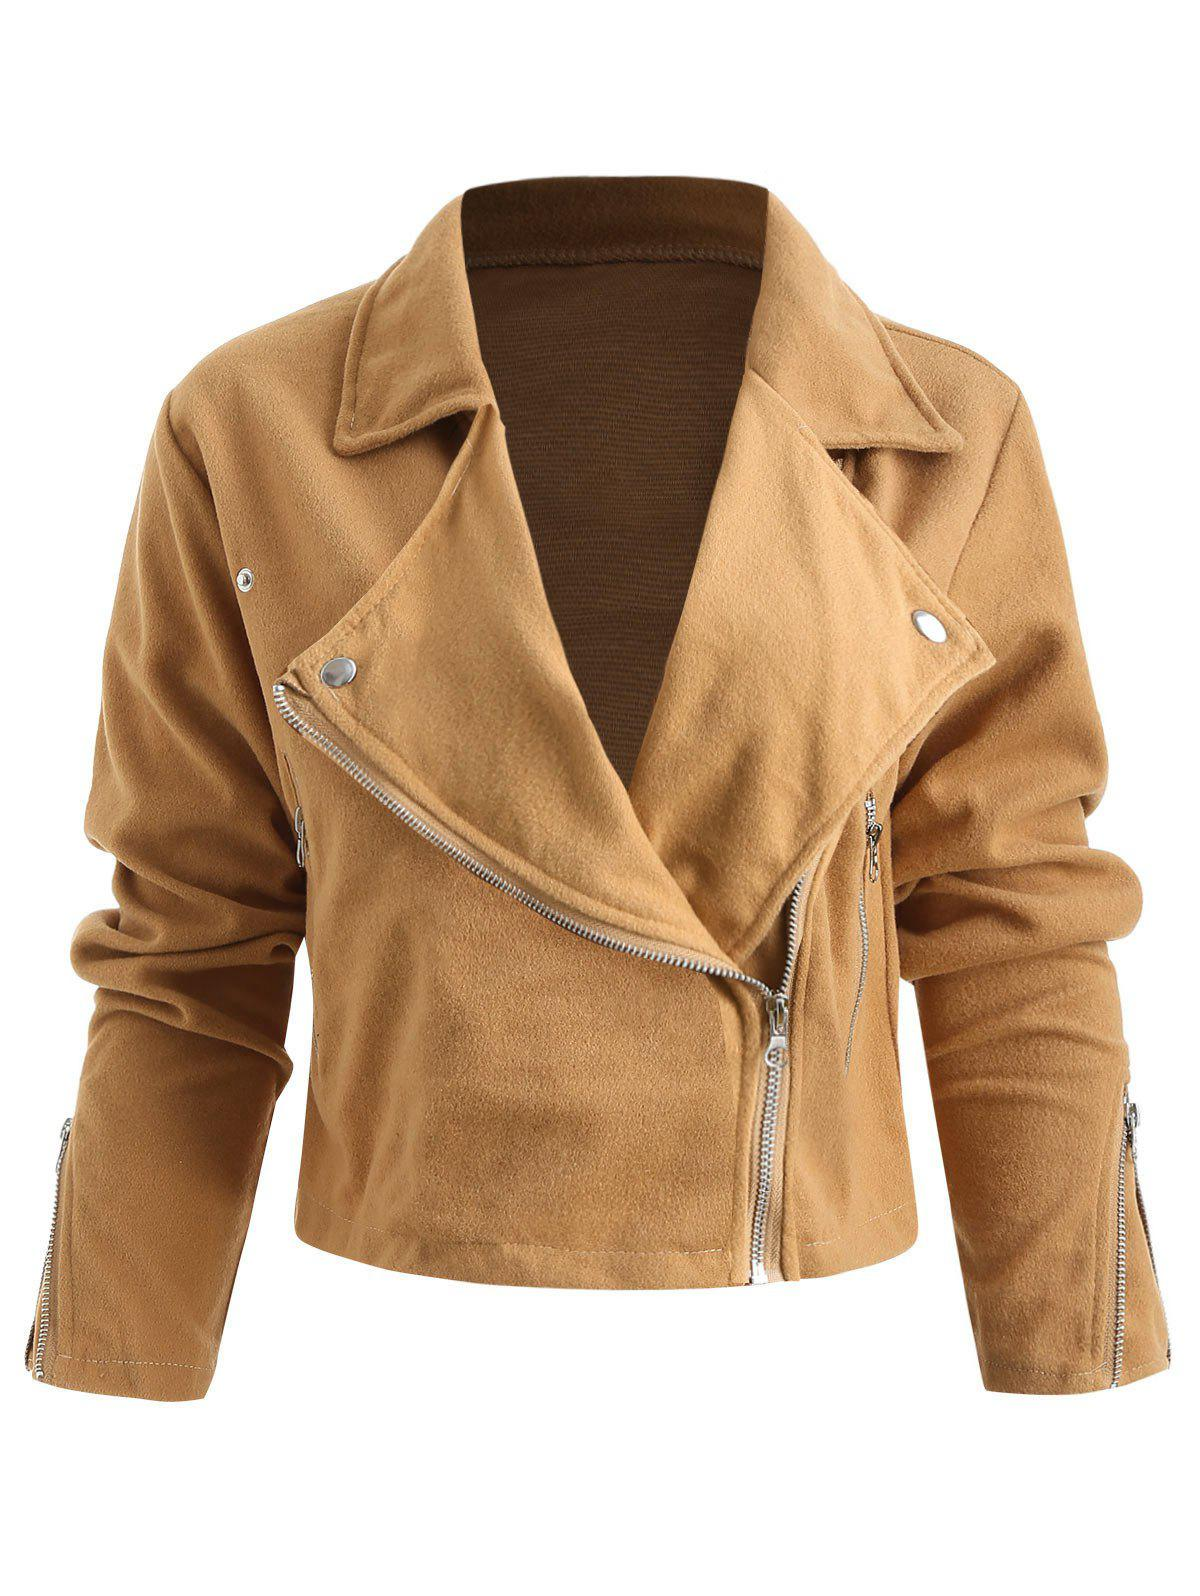 Shops Zipped Lapel Collar Jacket